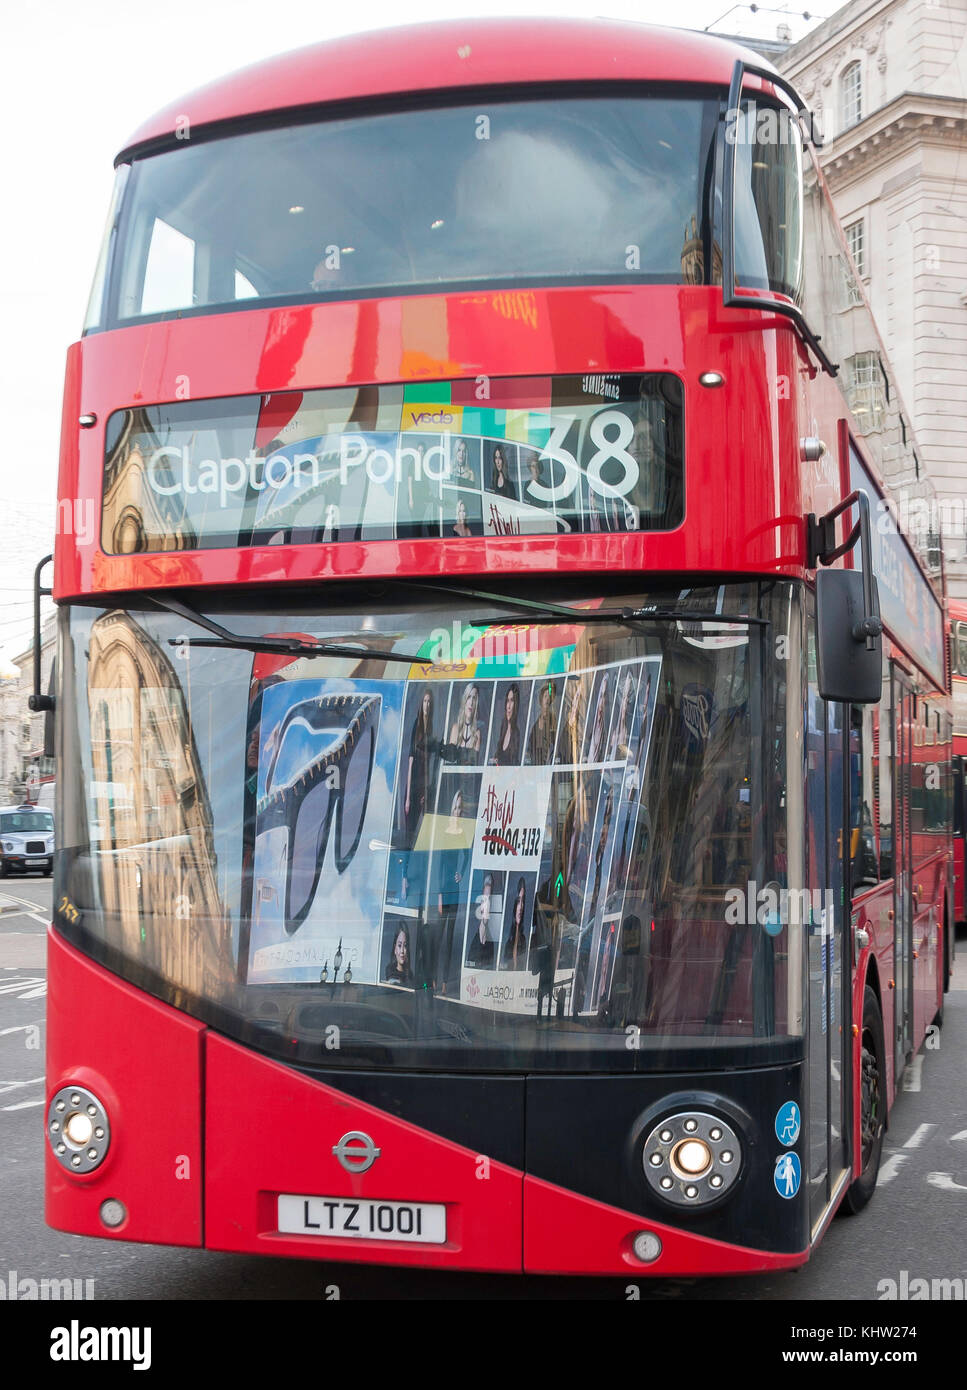 Clapton bus with neon sign reflections, Piccadilly Circus, Piccadilly, West End, City of Westminster, Greater London, - Stock Image